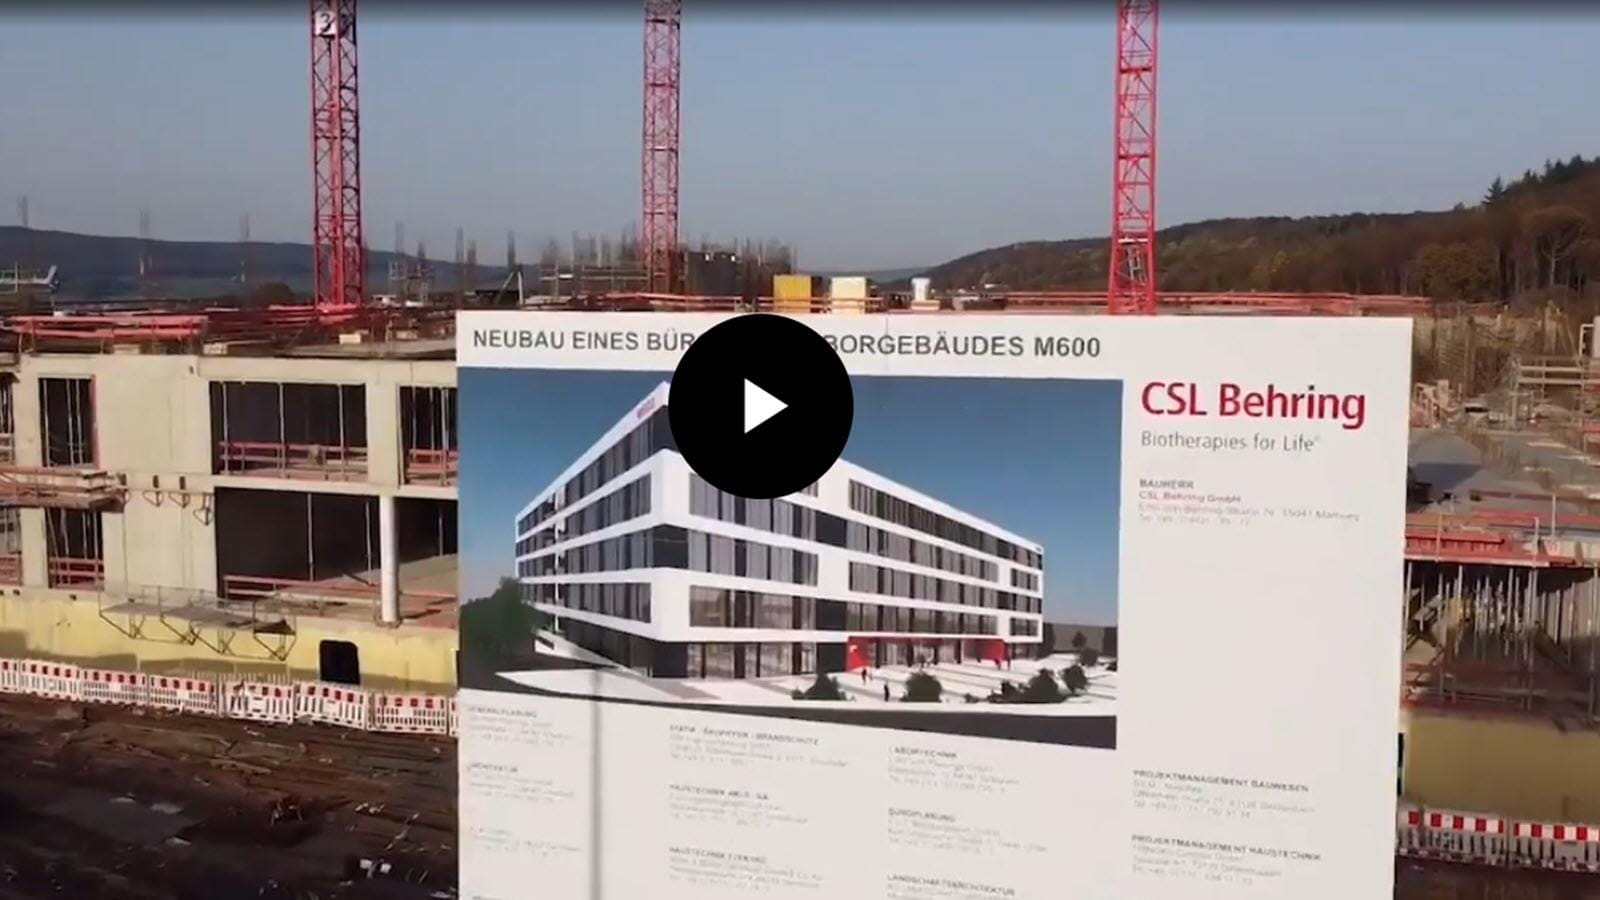 finished building illustration in front of ongoing Marburg R&D construction